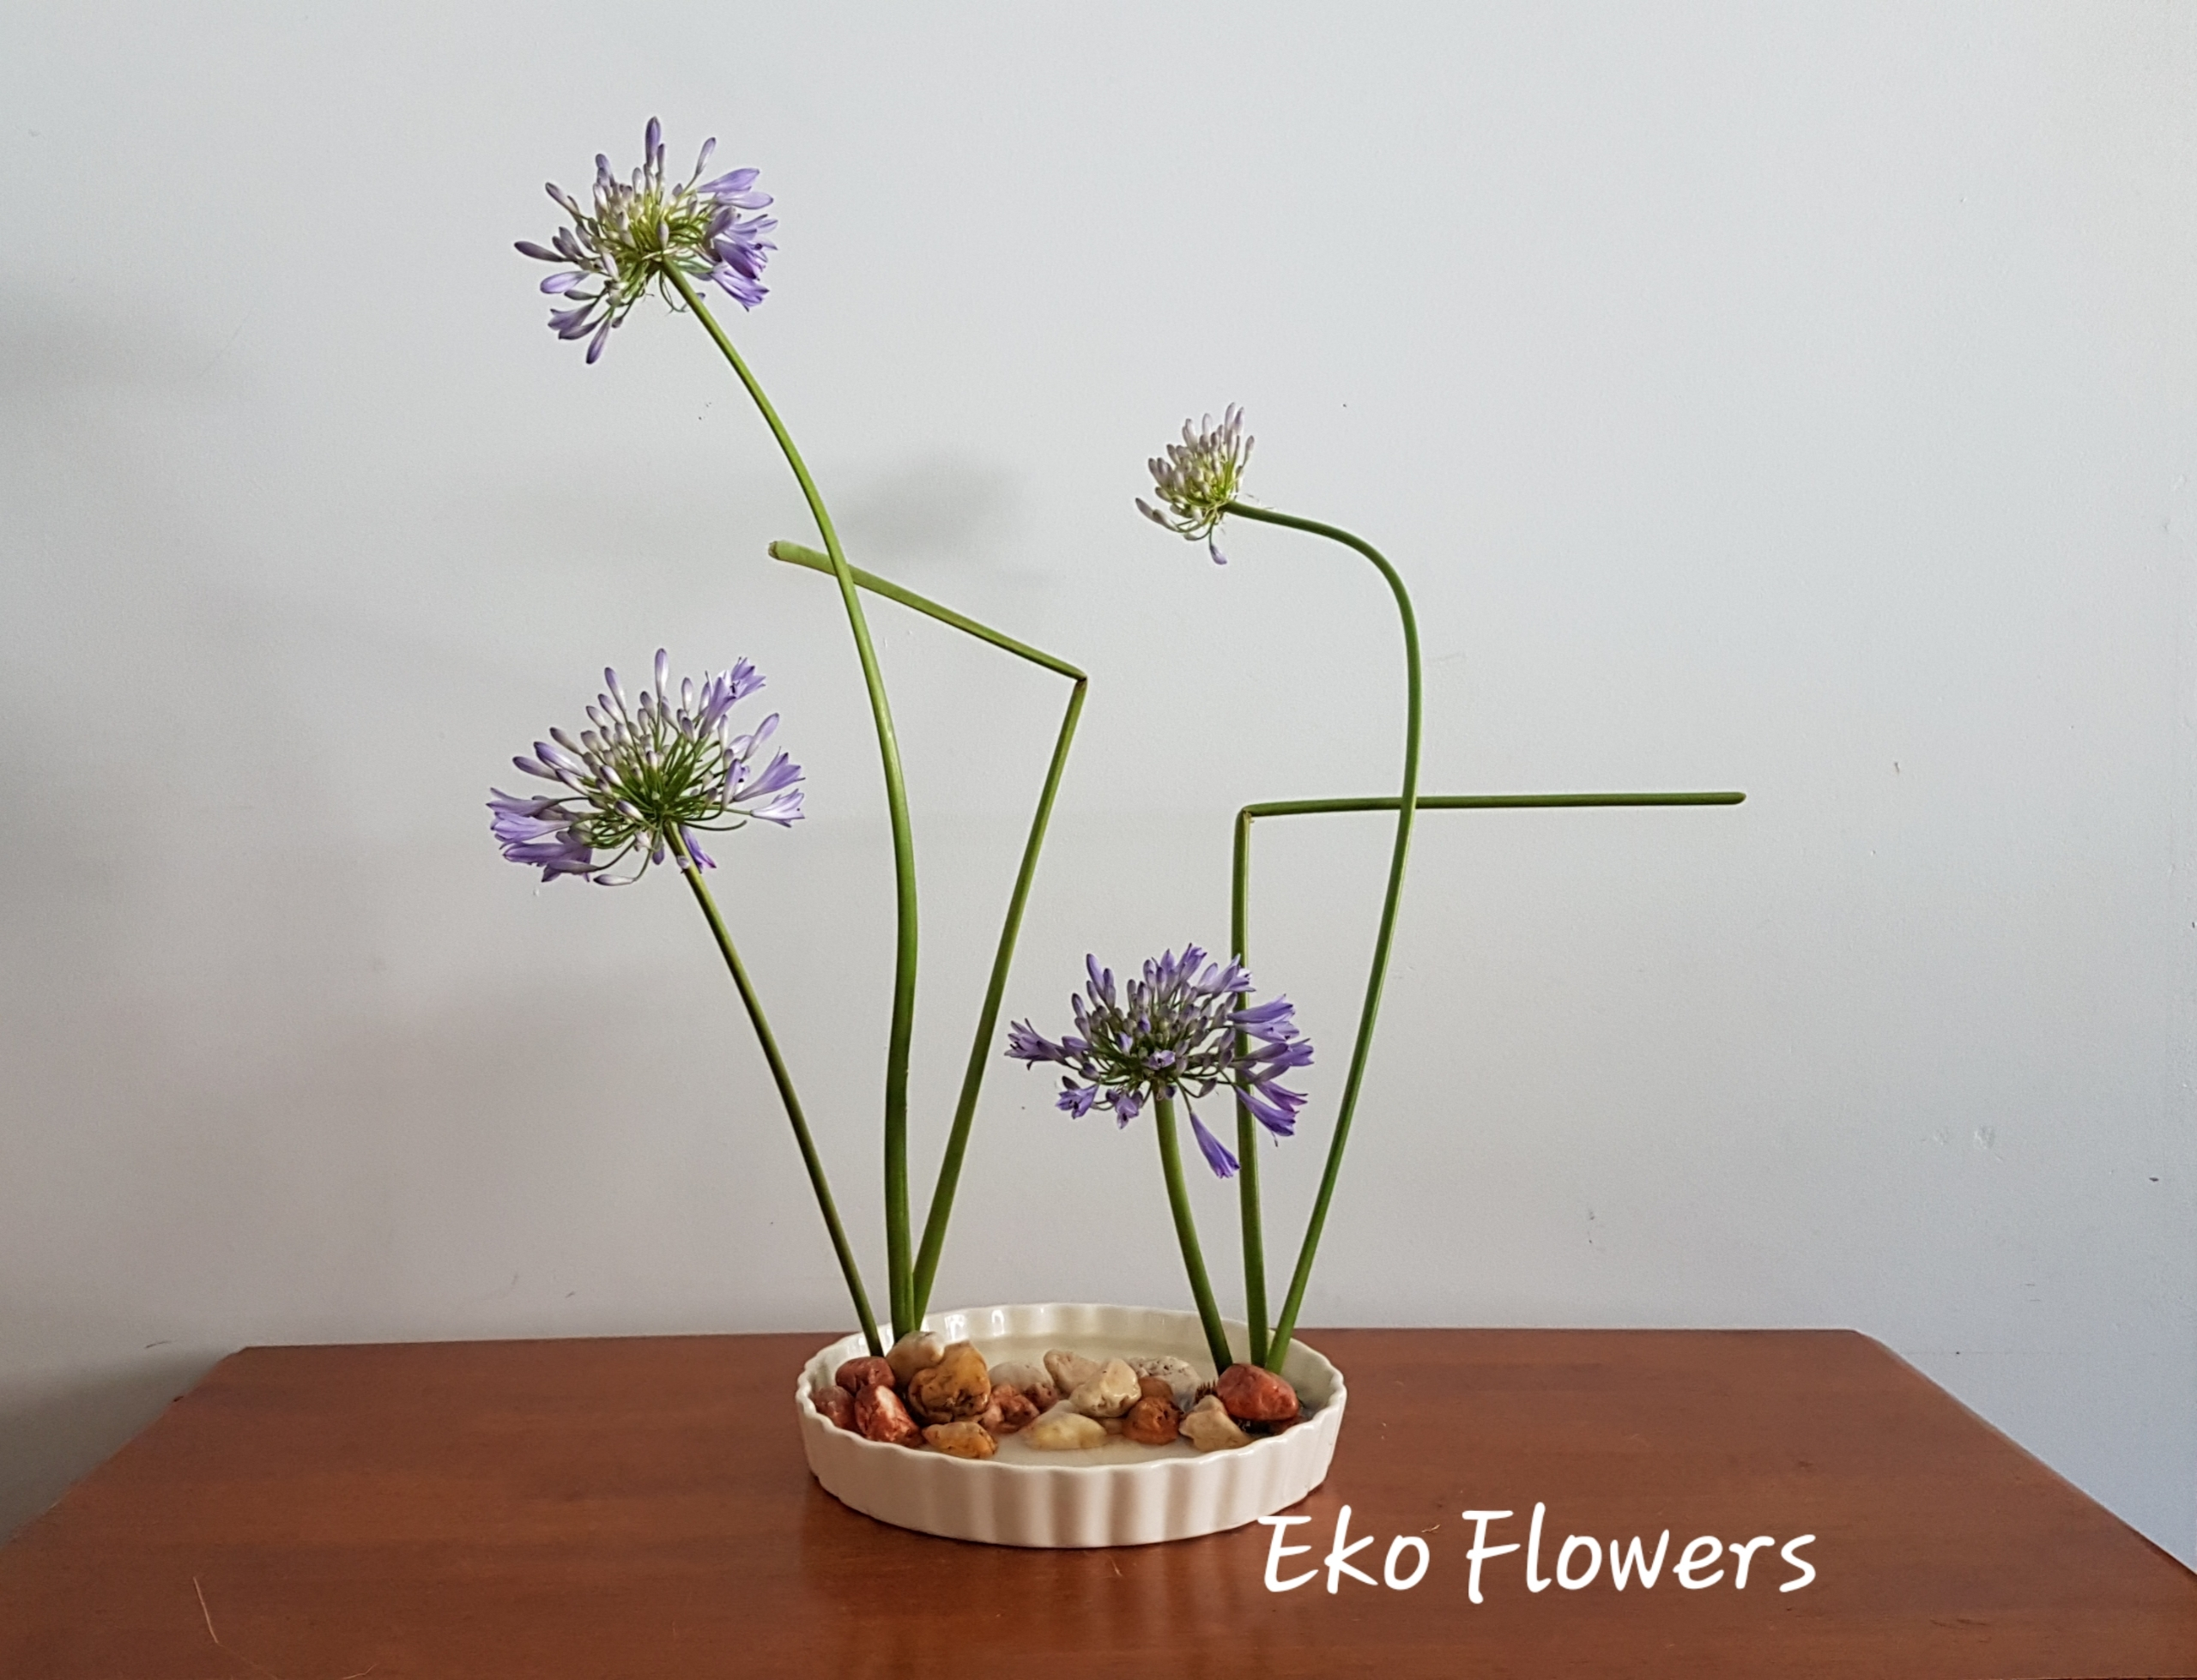 Composition today 2019 bring go - ekoflowers | ello